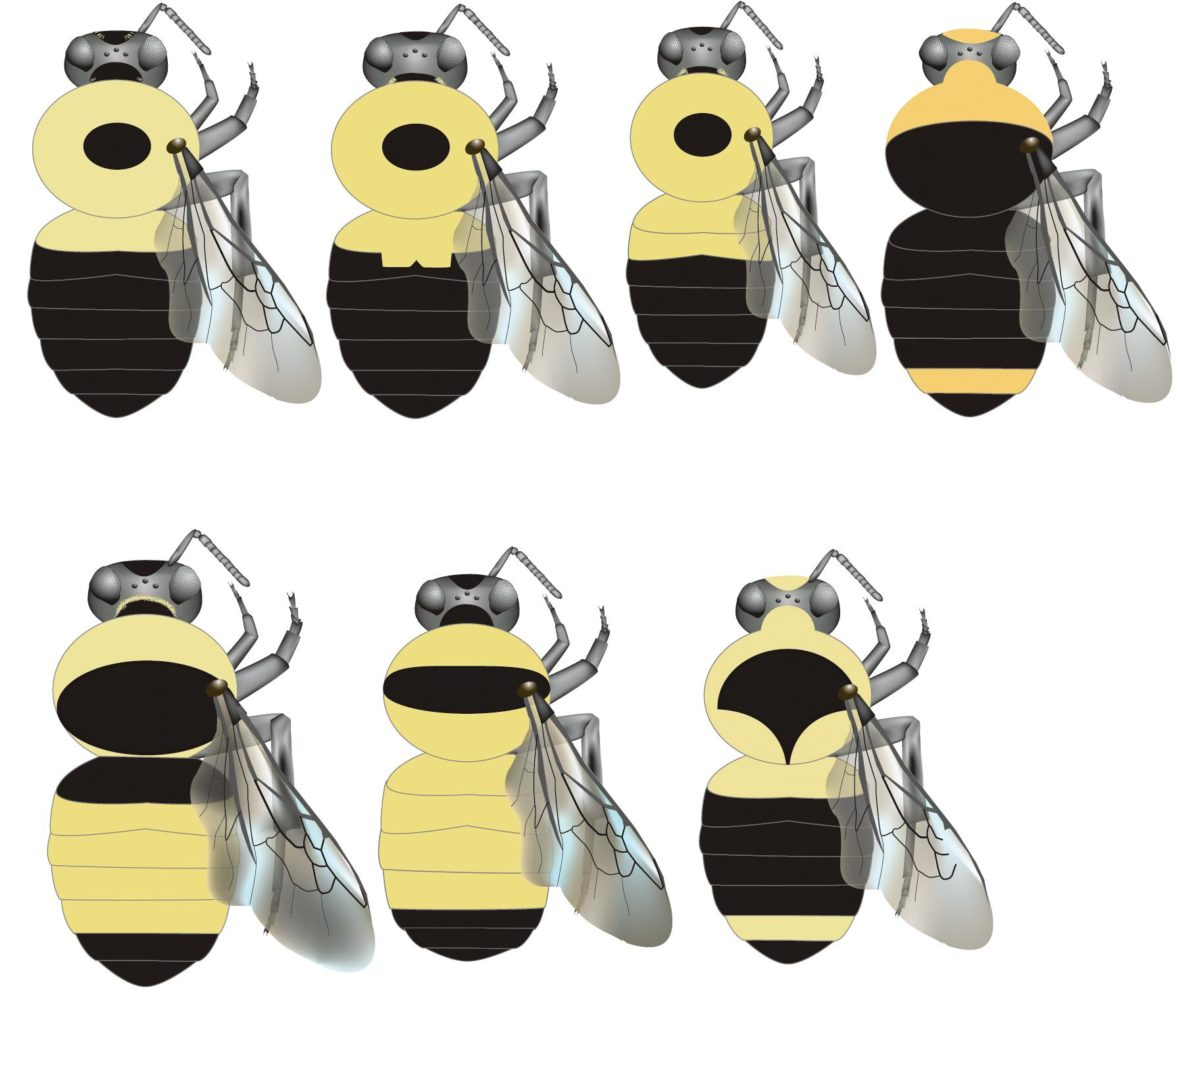 Common bumble bees of North America.